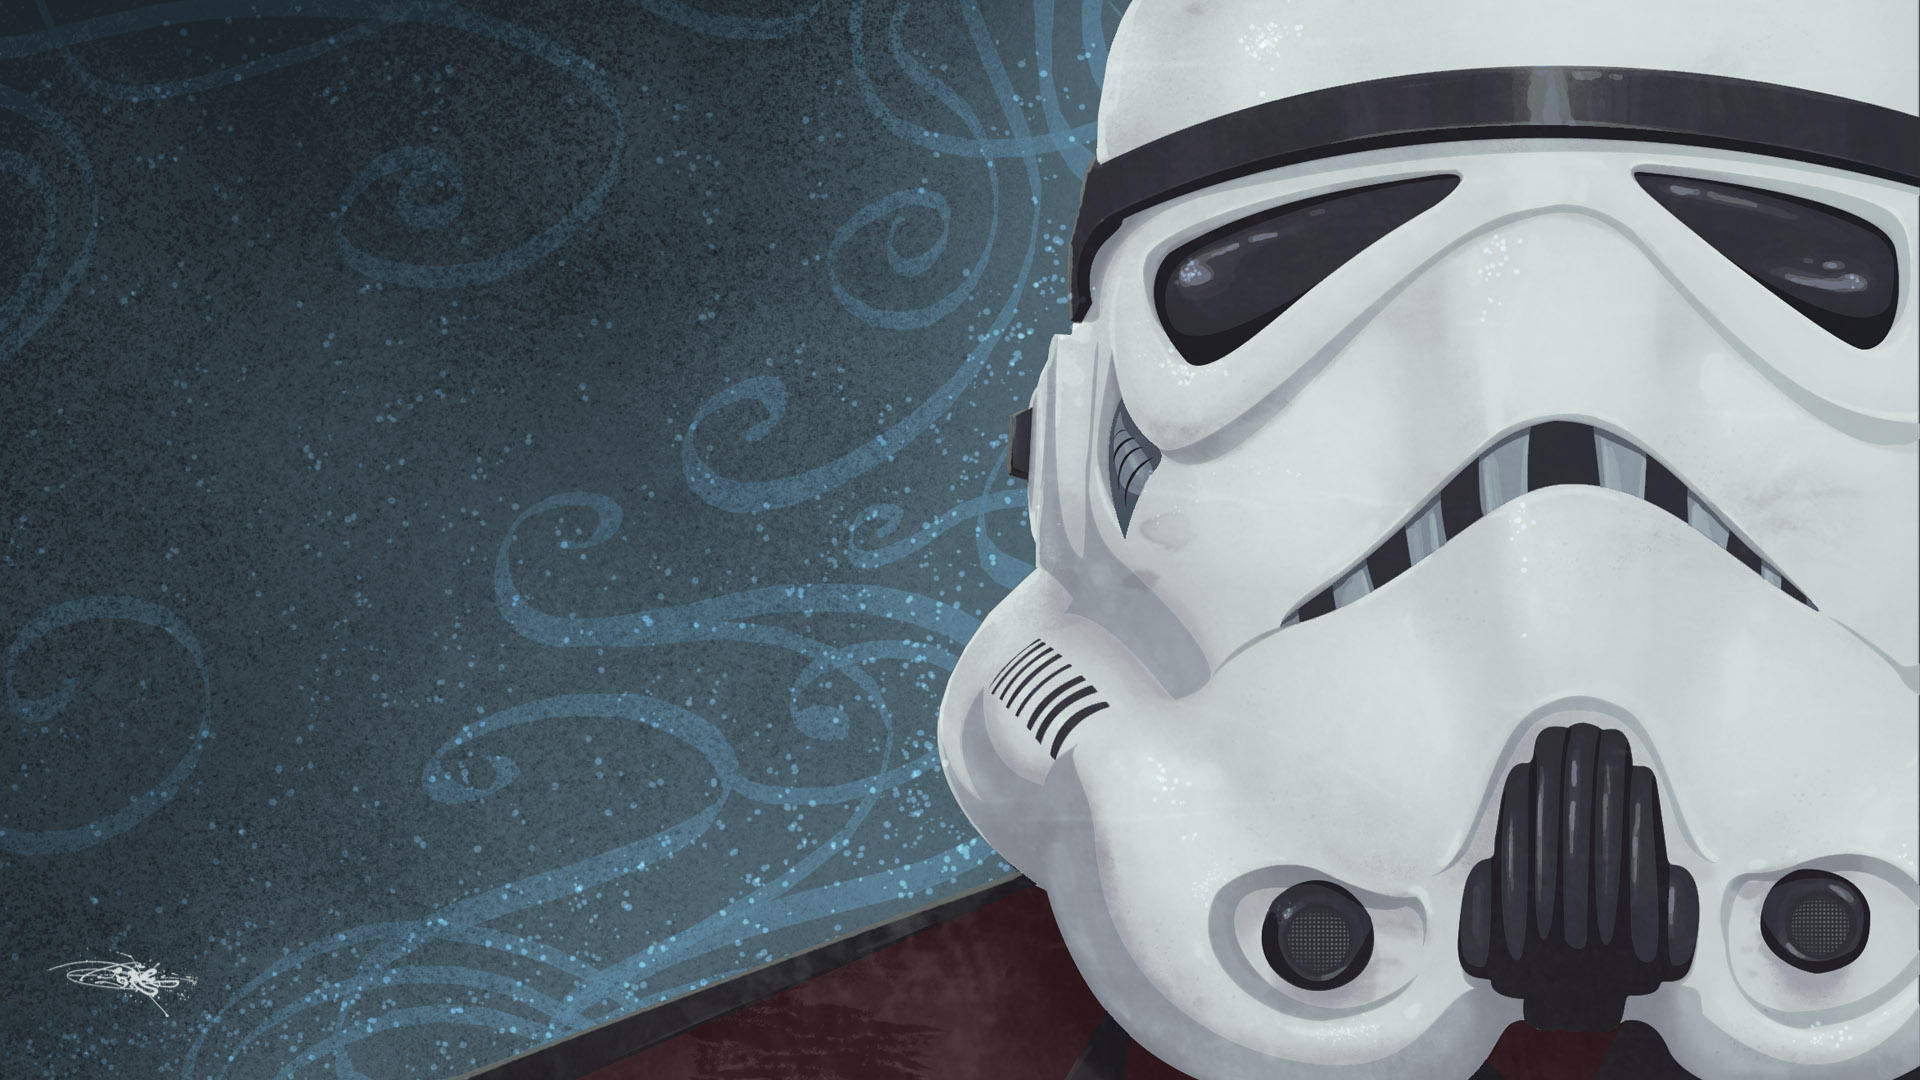 Published July 13 2010 at 1920 1080 in Star Wars Wallpaper Set 8 1920x1080